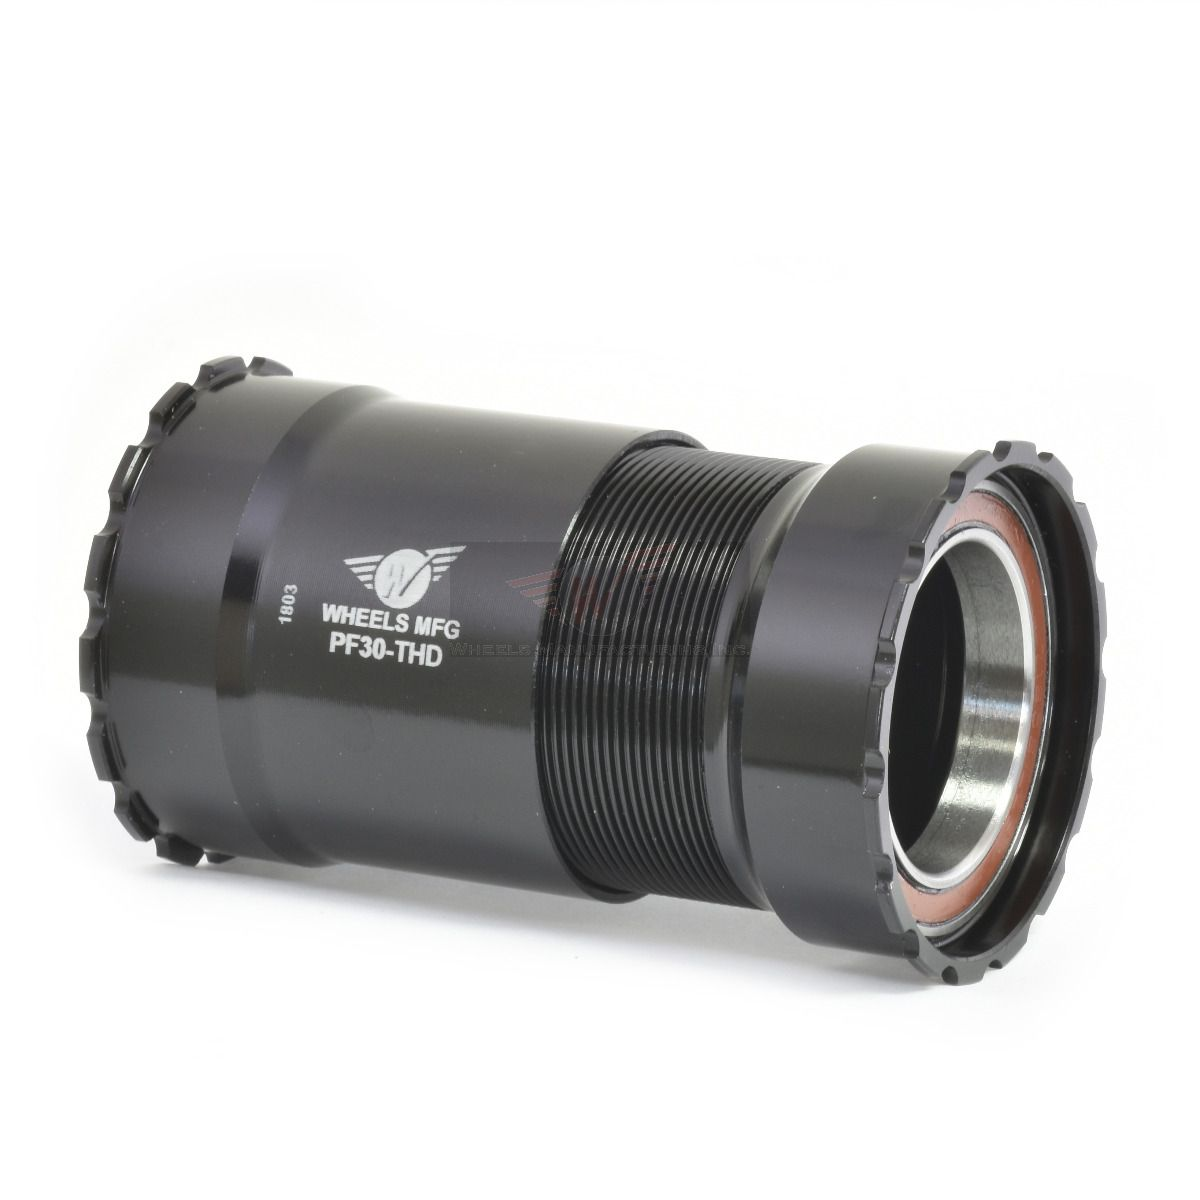 Black - w/ Angular Contact Bearings, PressFit 30 Threaded Bottom Bracket